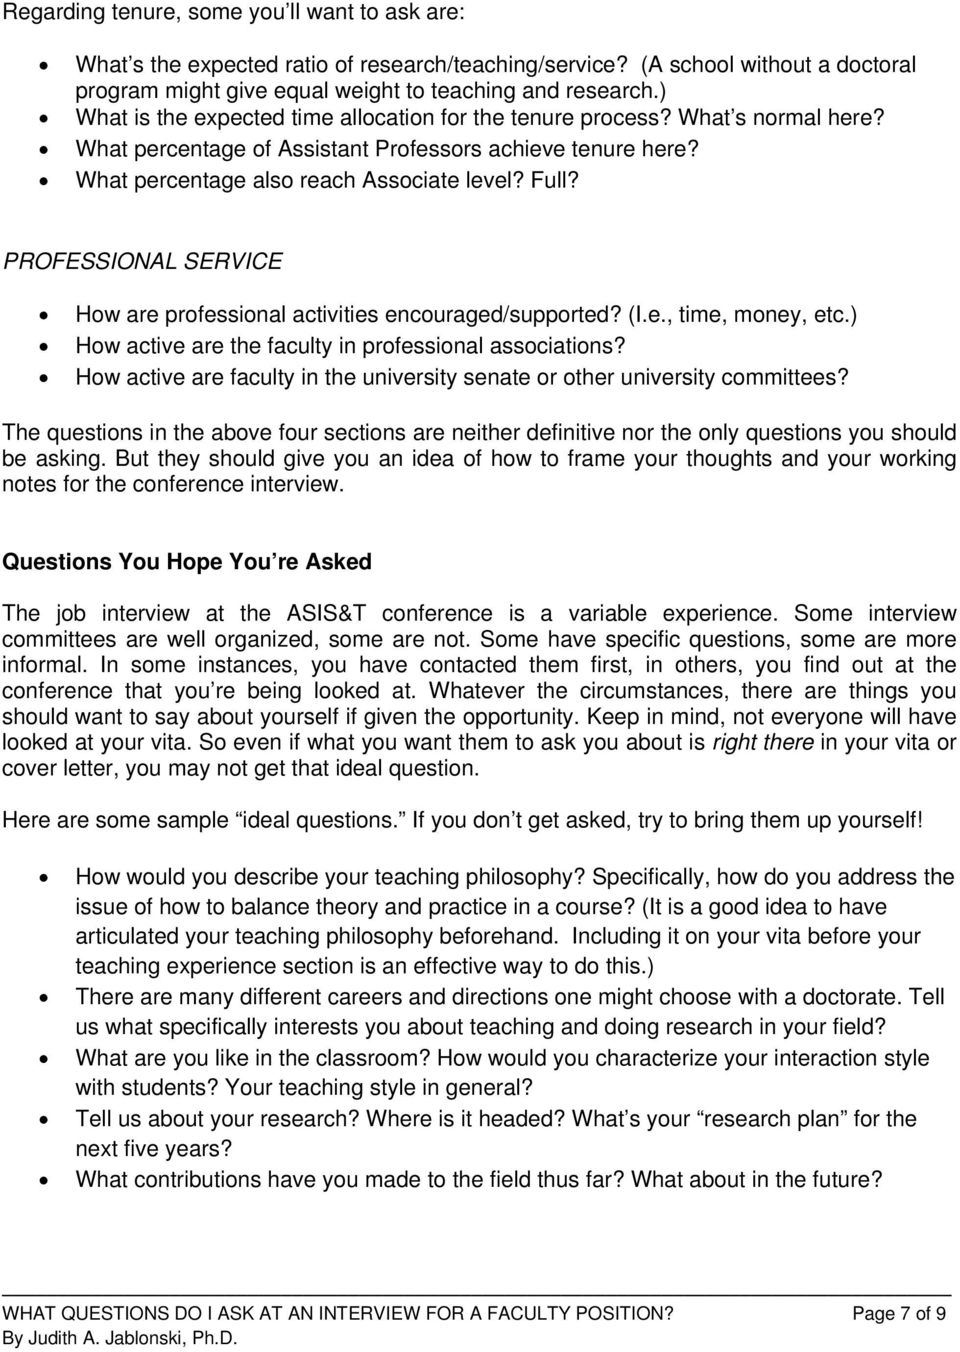 PROFESSIONAL SERVICE How are professional activities encouraged/supported? (I.e., time, money, etc.) How active are the faculty in professional associations?